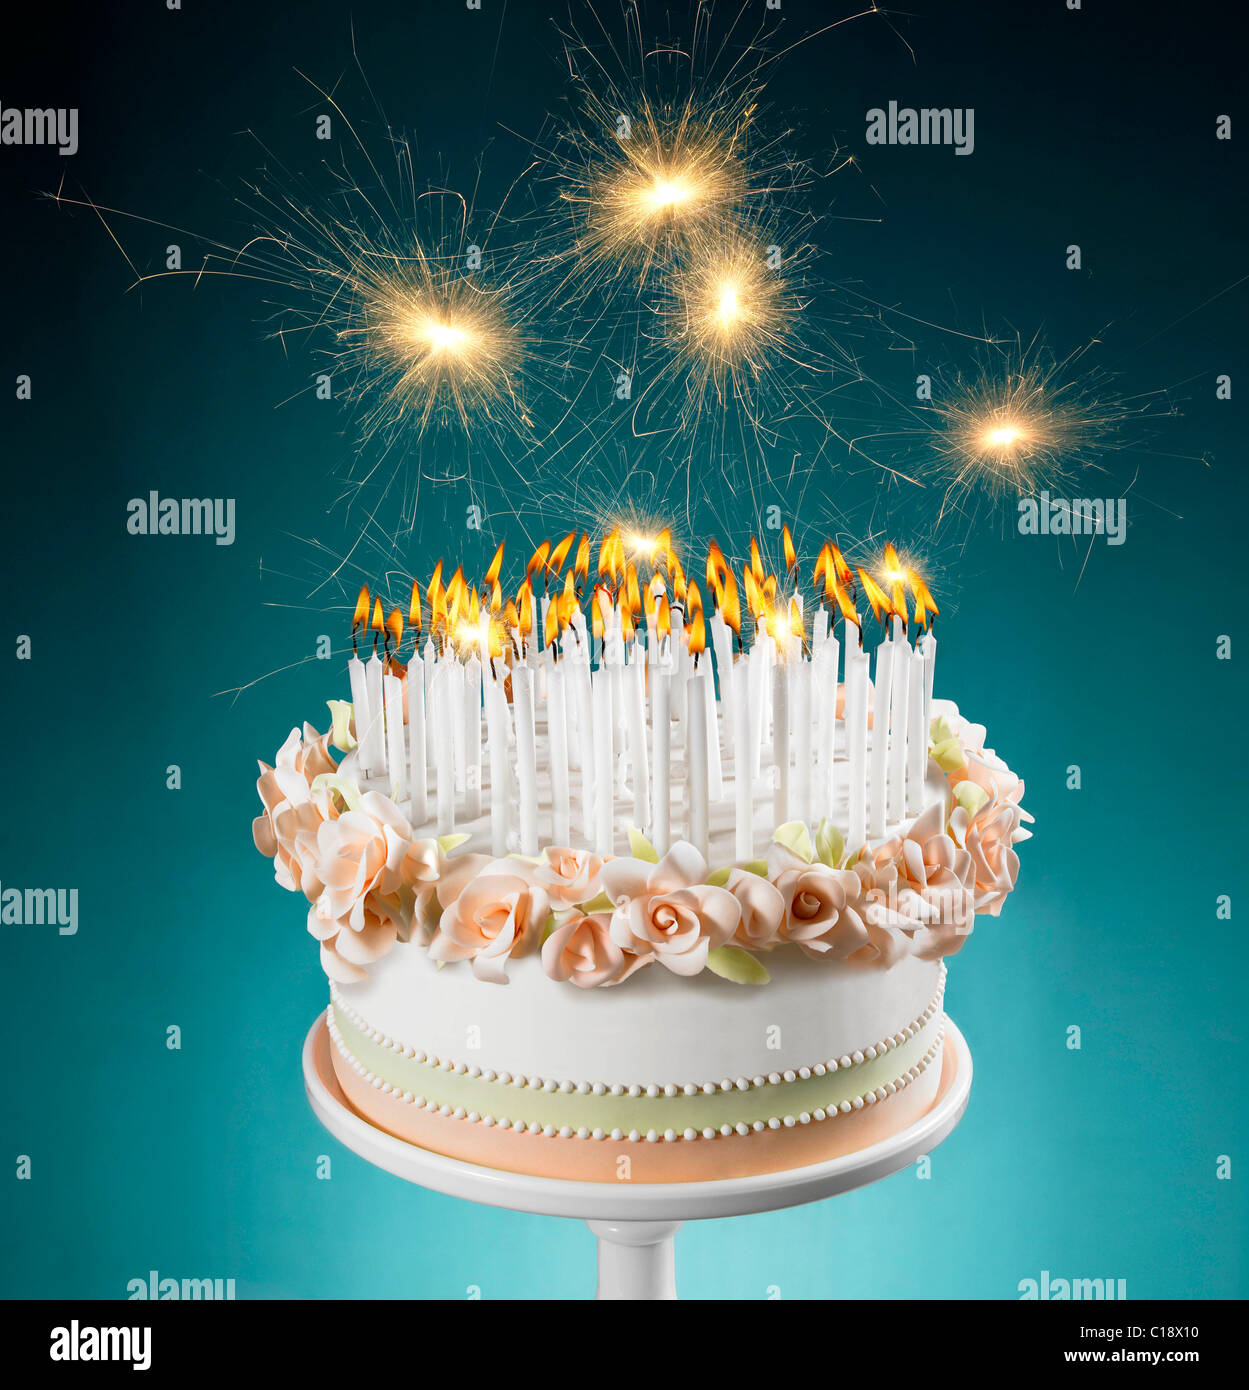 Birthday cake with lots of burning candles Stock Photo 35231420 Alamy